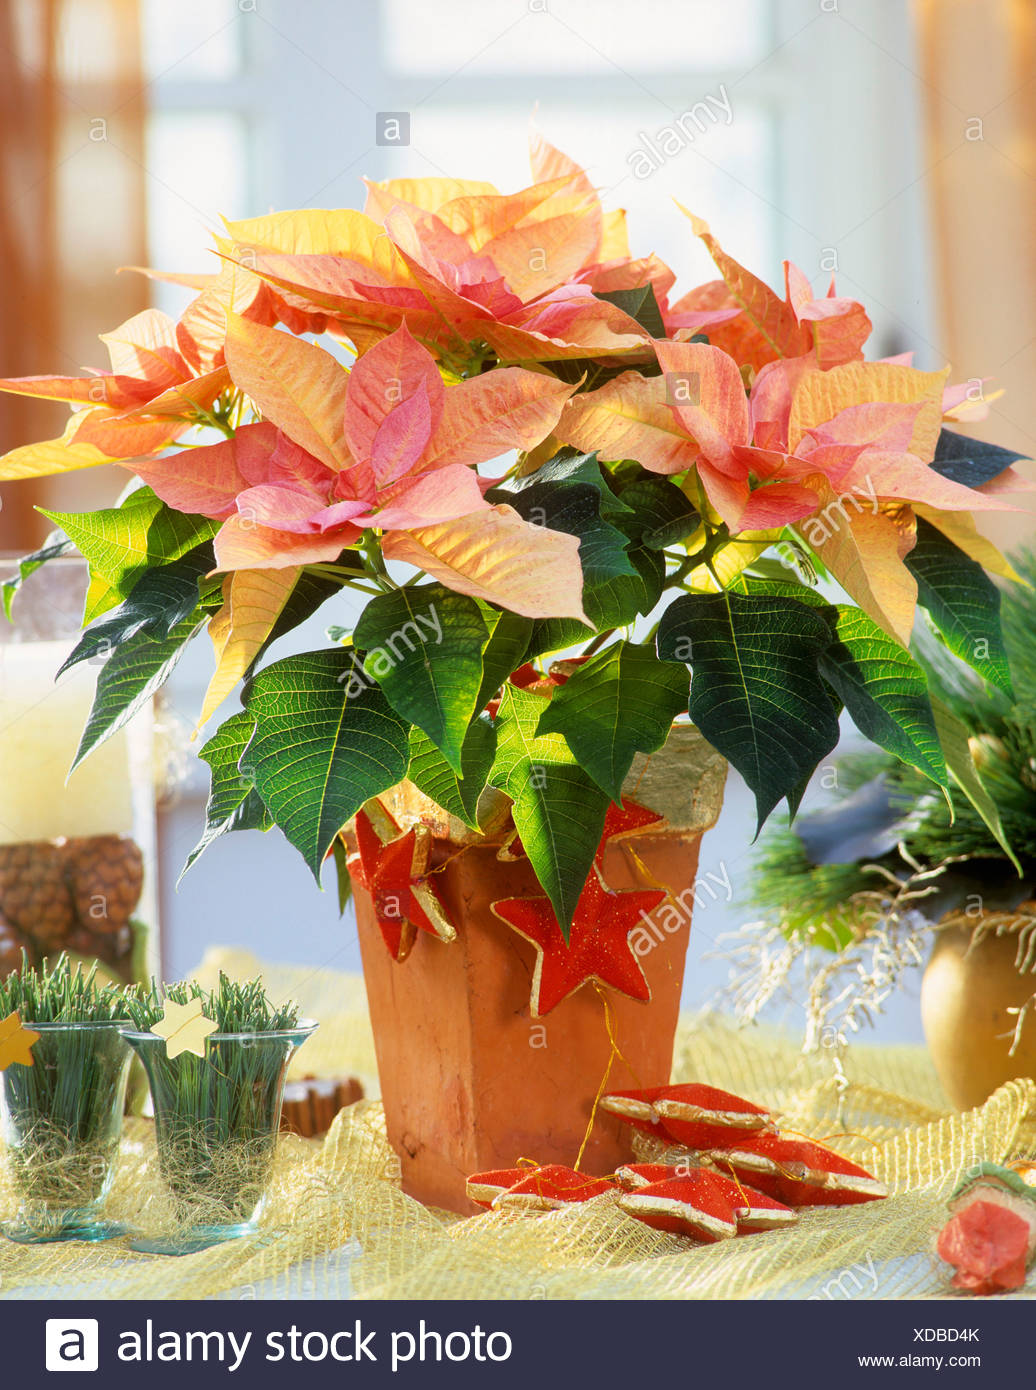 Pink Poinsettia Cortez Candy With Advent Decorations Stock Photo